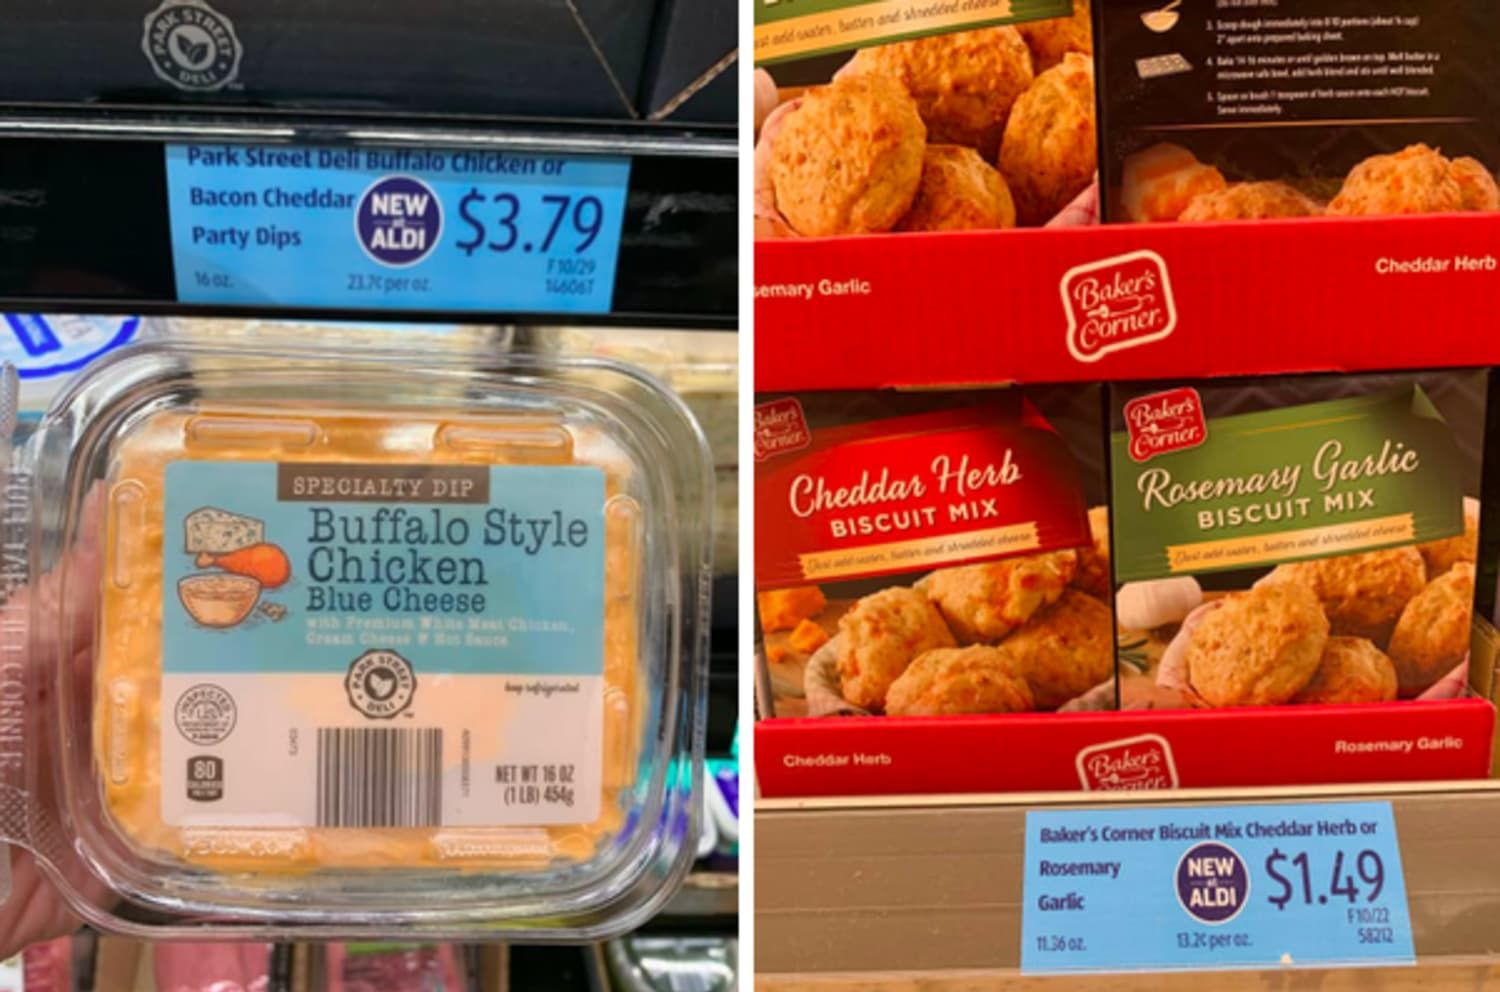 The 10 Must Have Aldi Buys For Fall Starbucks Pumpkin Bread Biscuit Mix Sweet Potato Chips